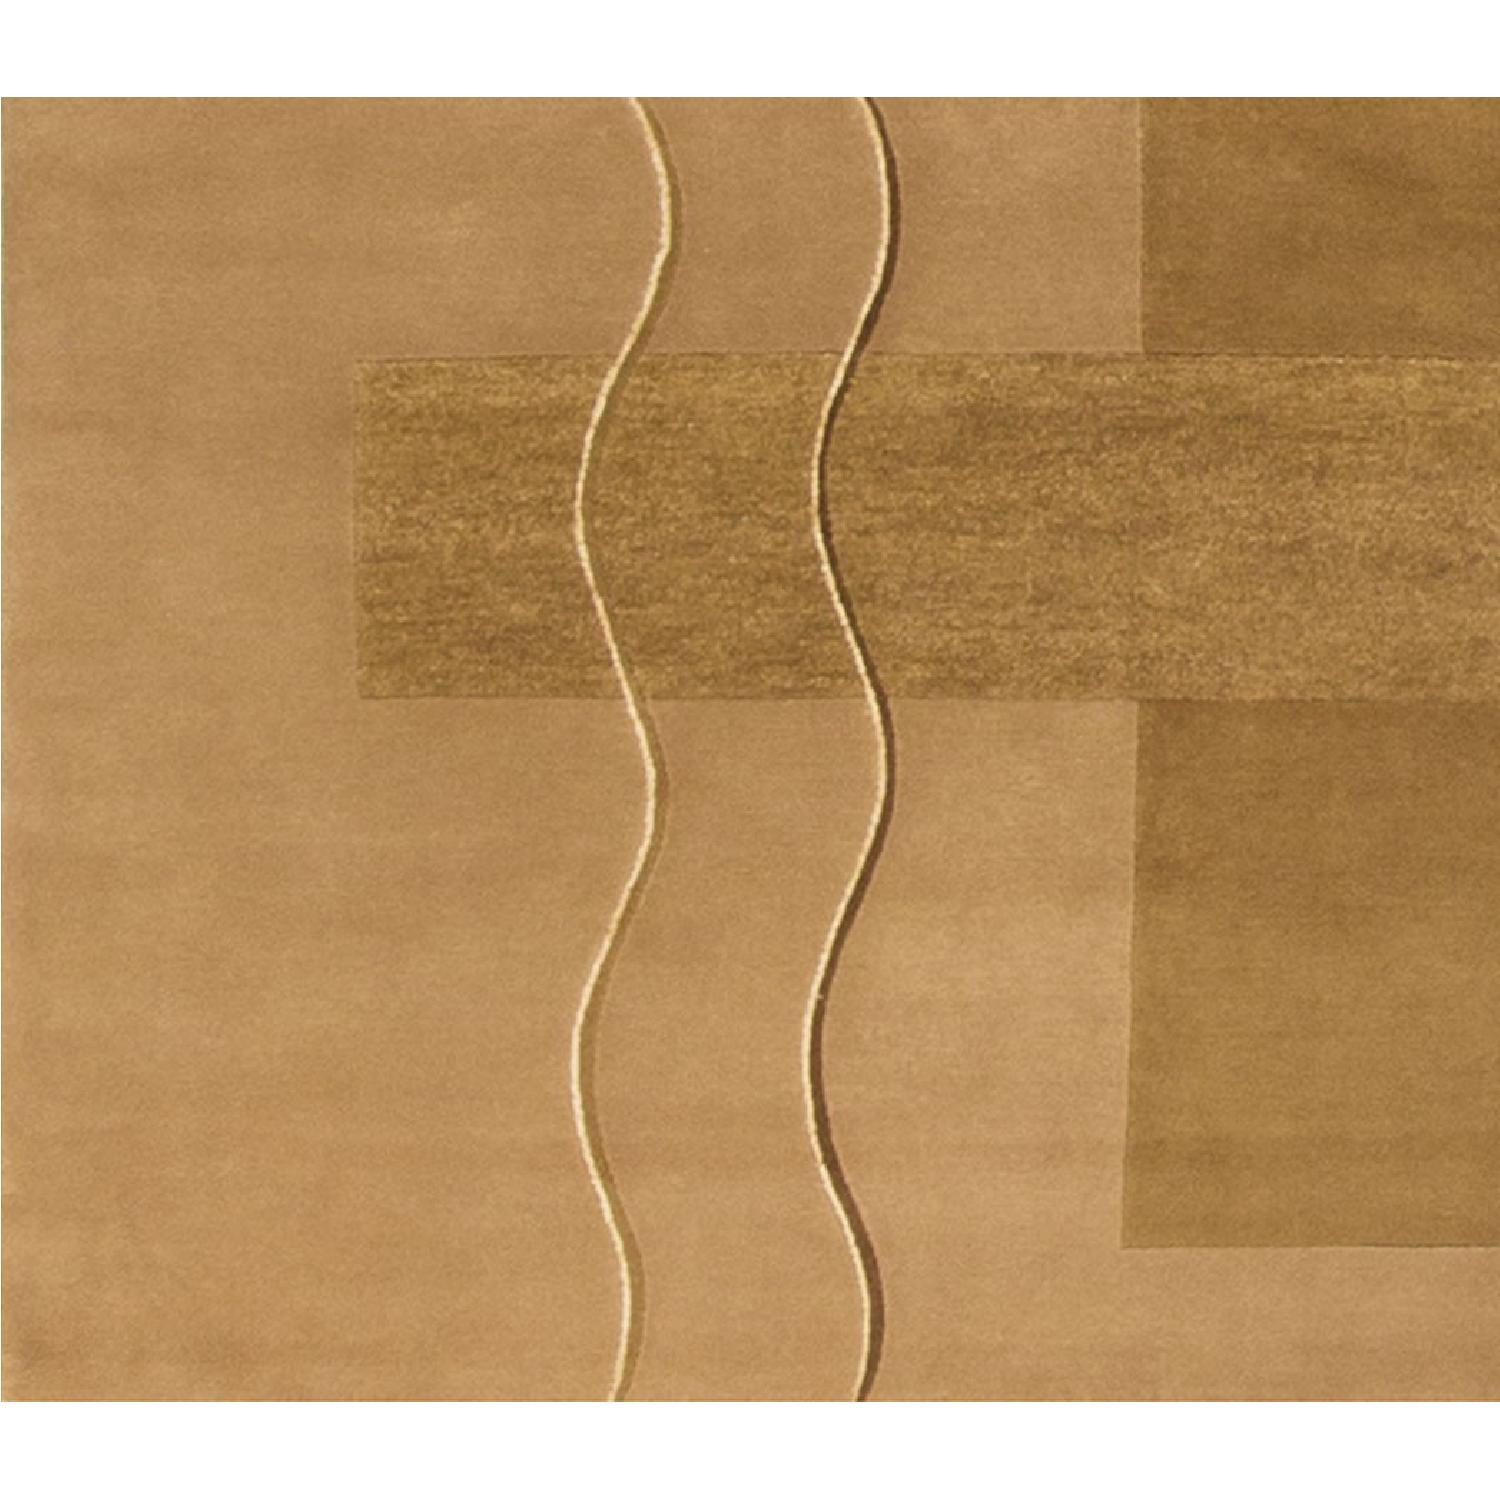 Modern Contemporary Hand Knotted Wool Rug in Beige/Brown - image-3